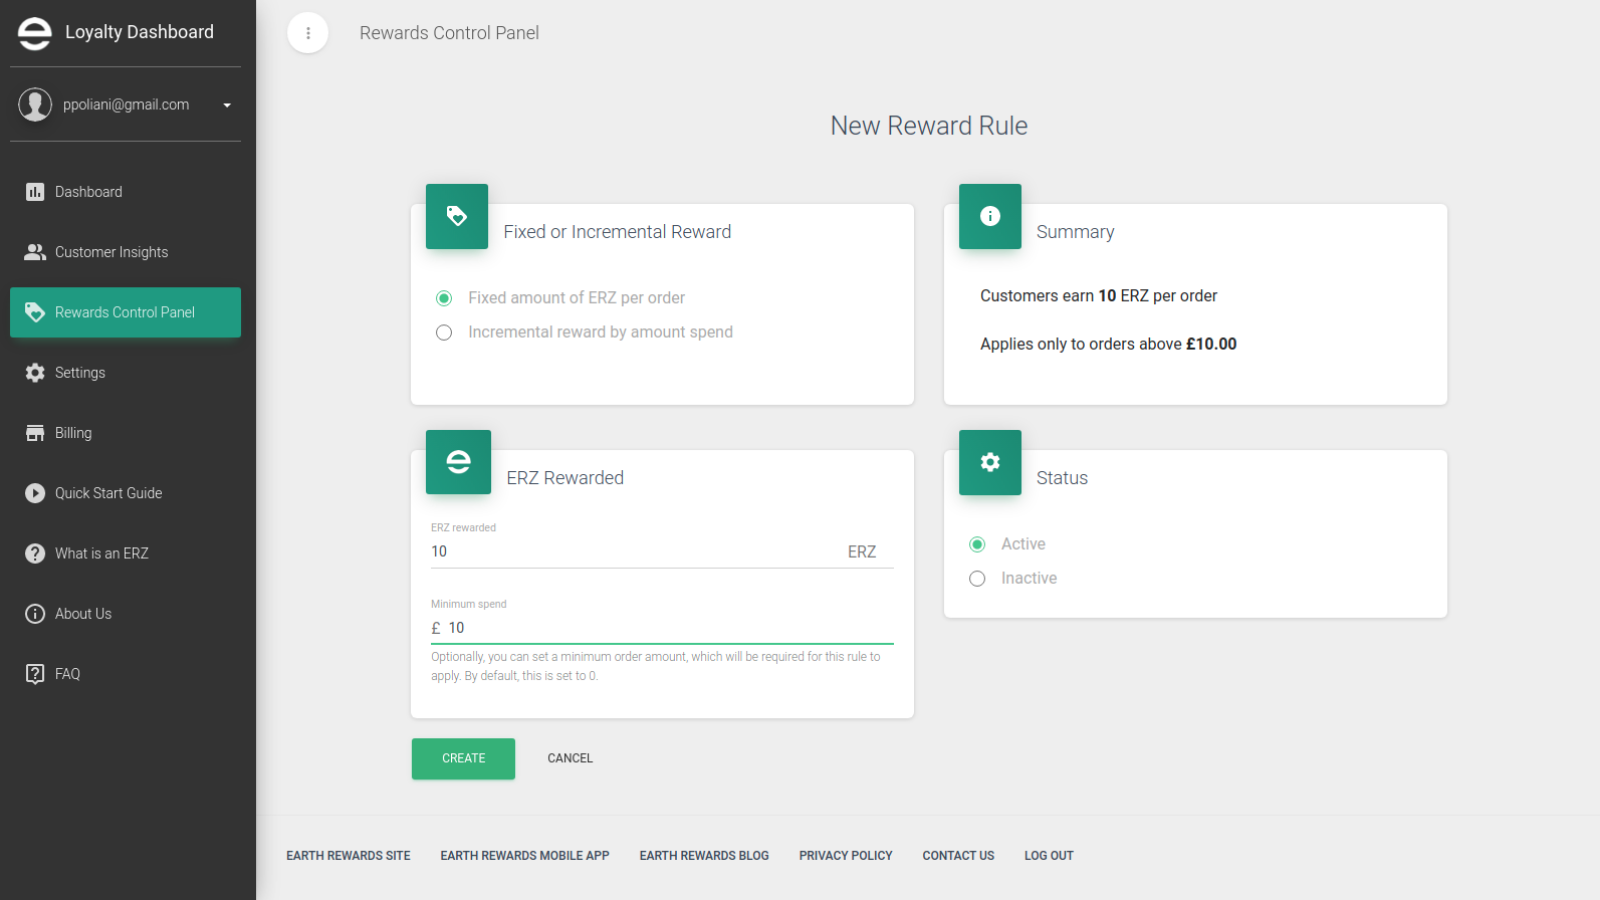 Rewards can be based on minimum spend, total spend and per order